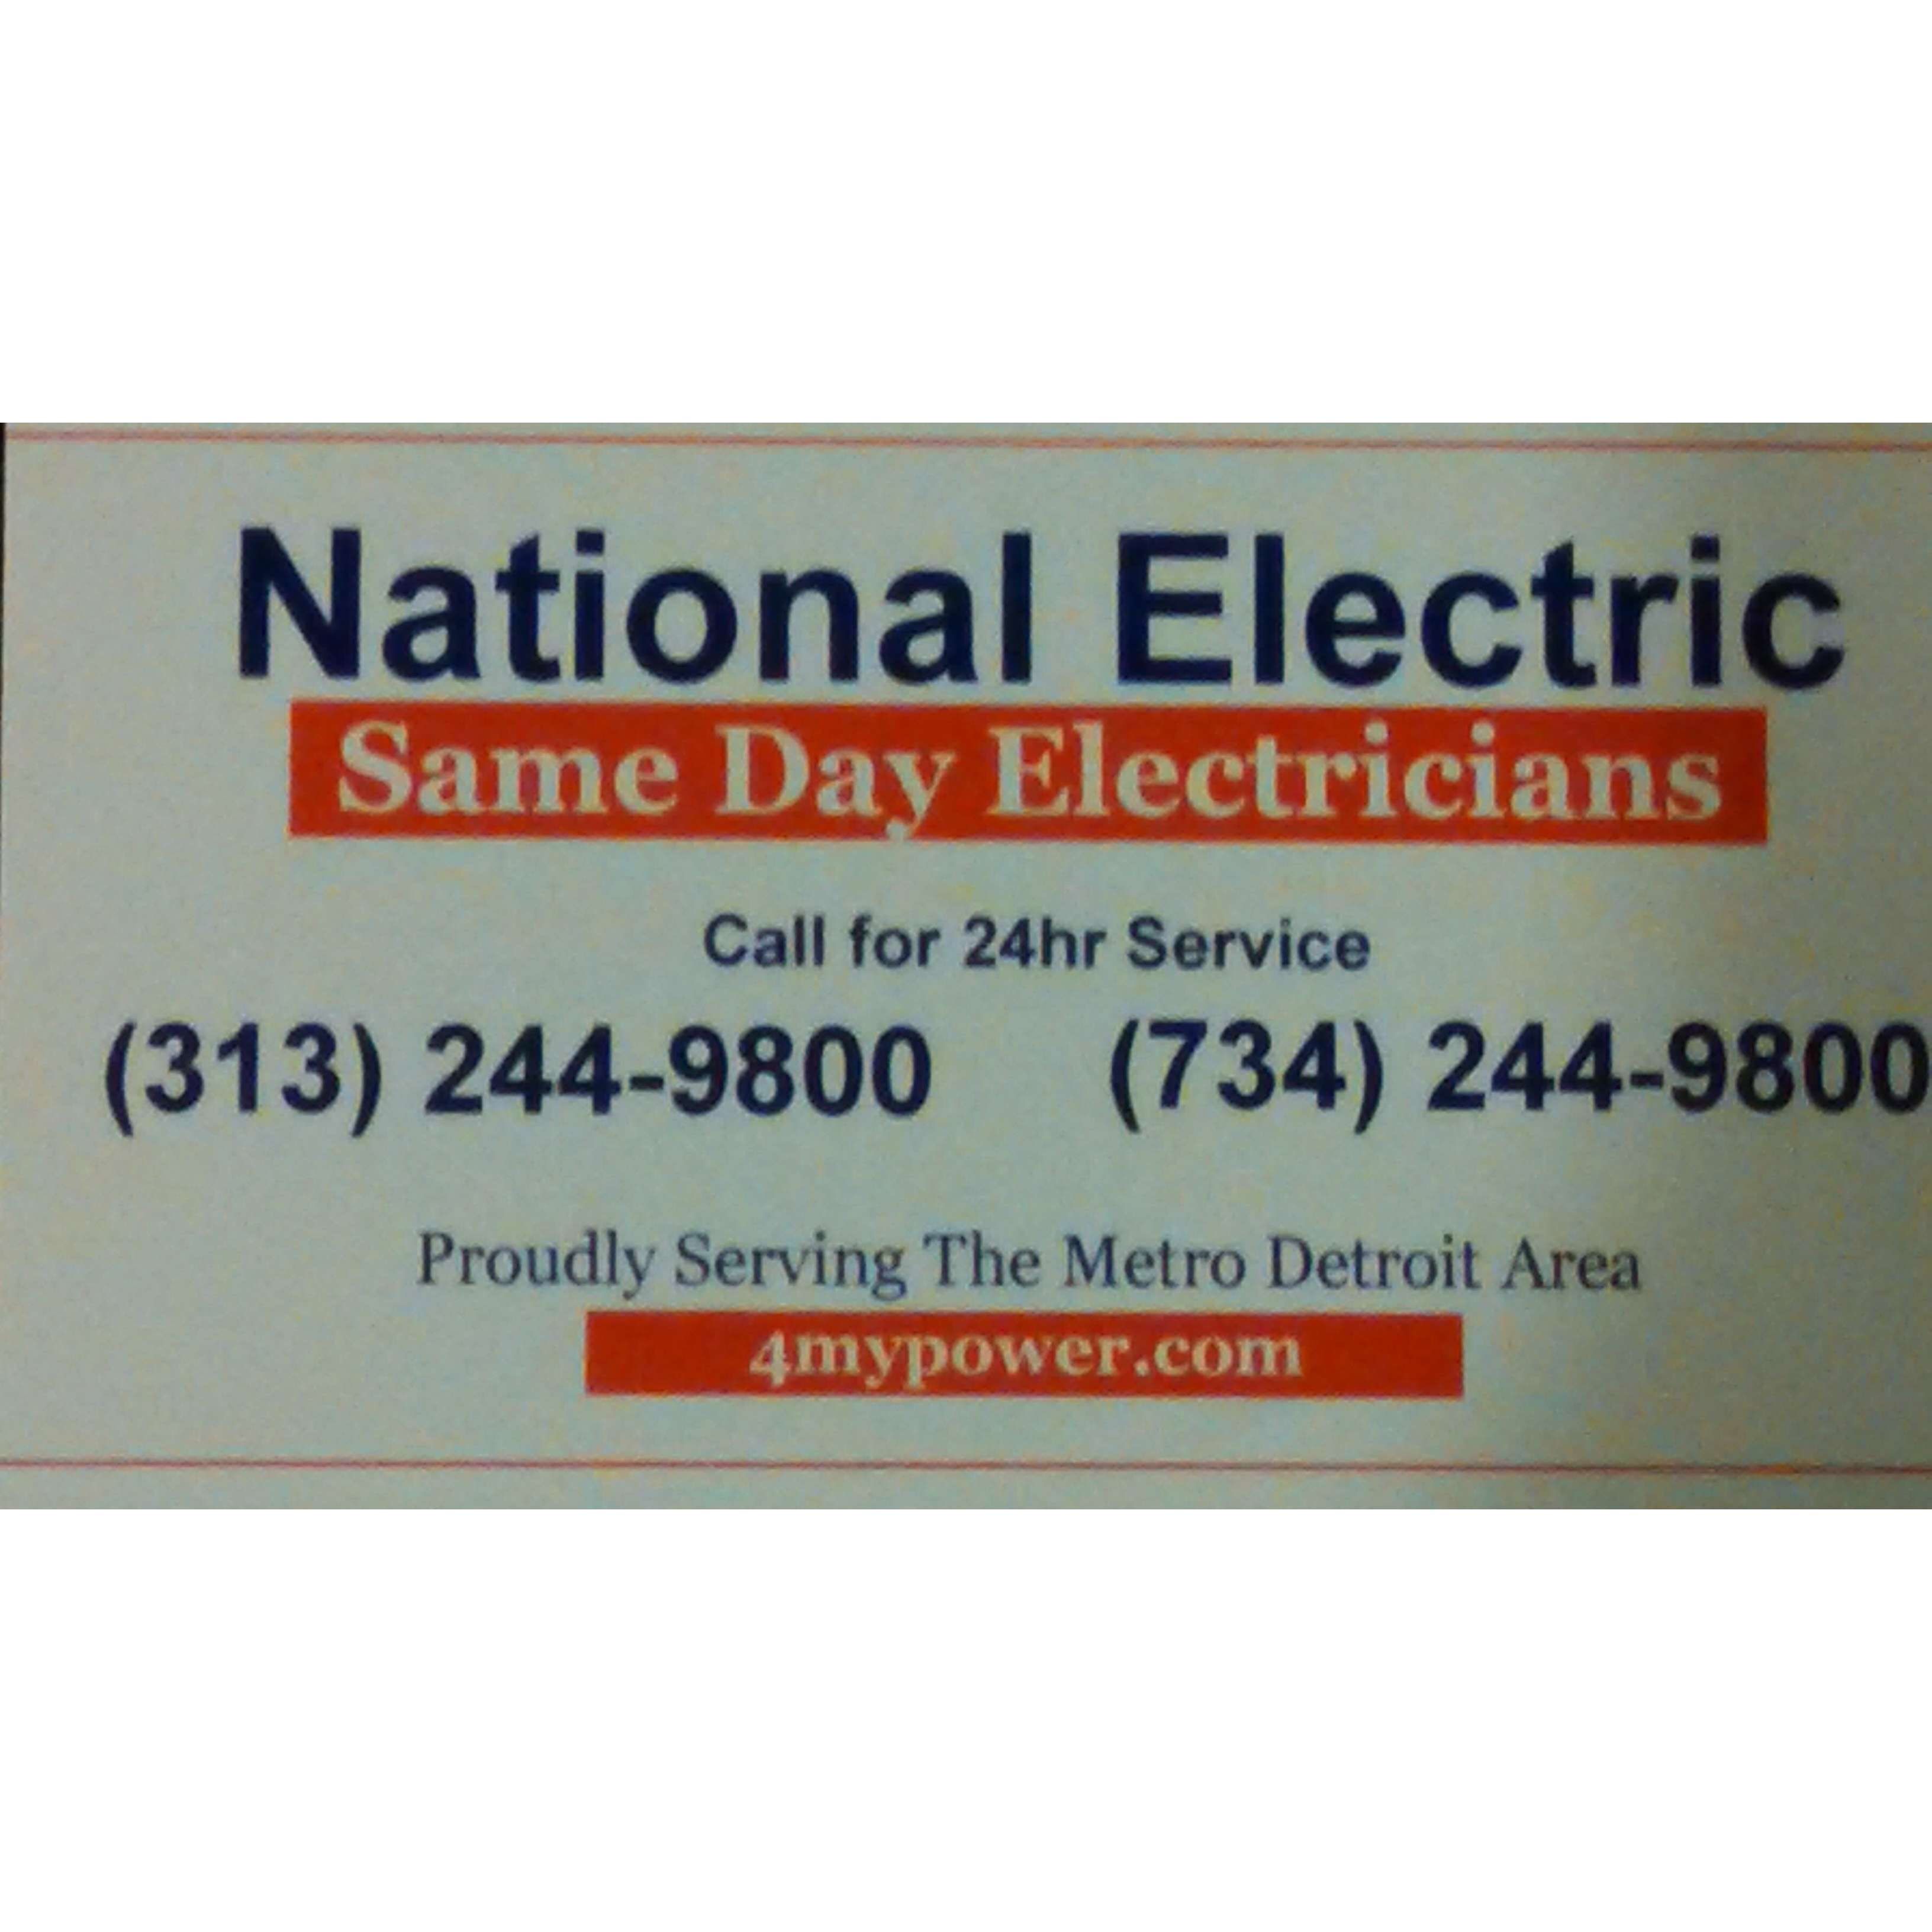 National Electric lc, (734) 244-9800